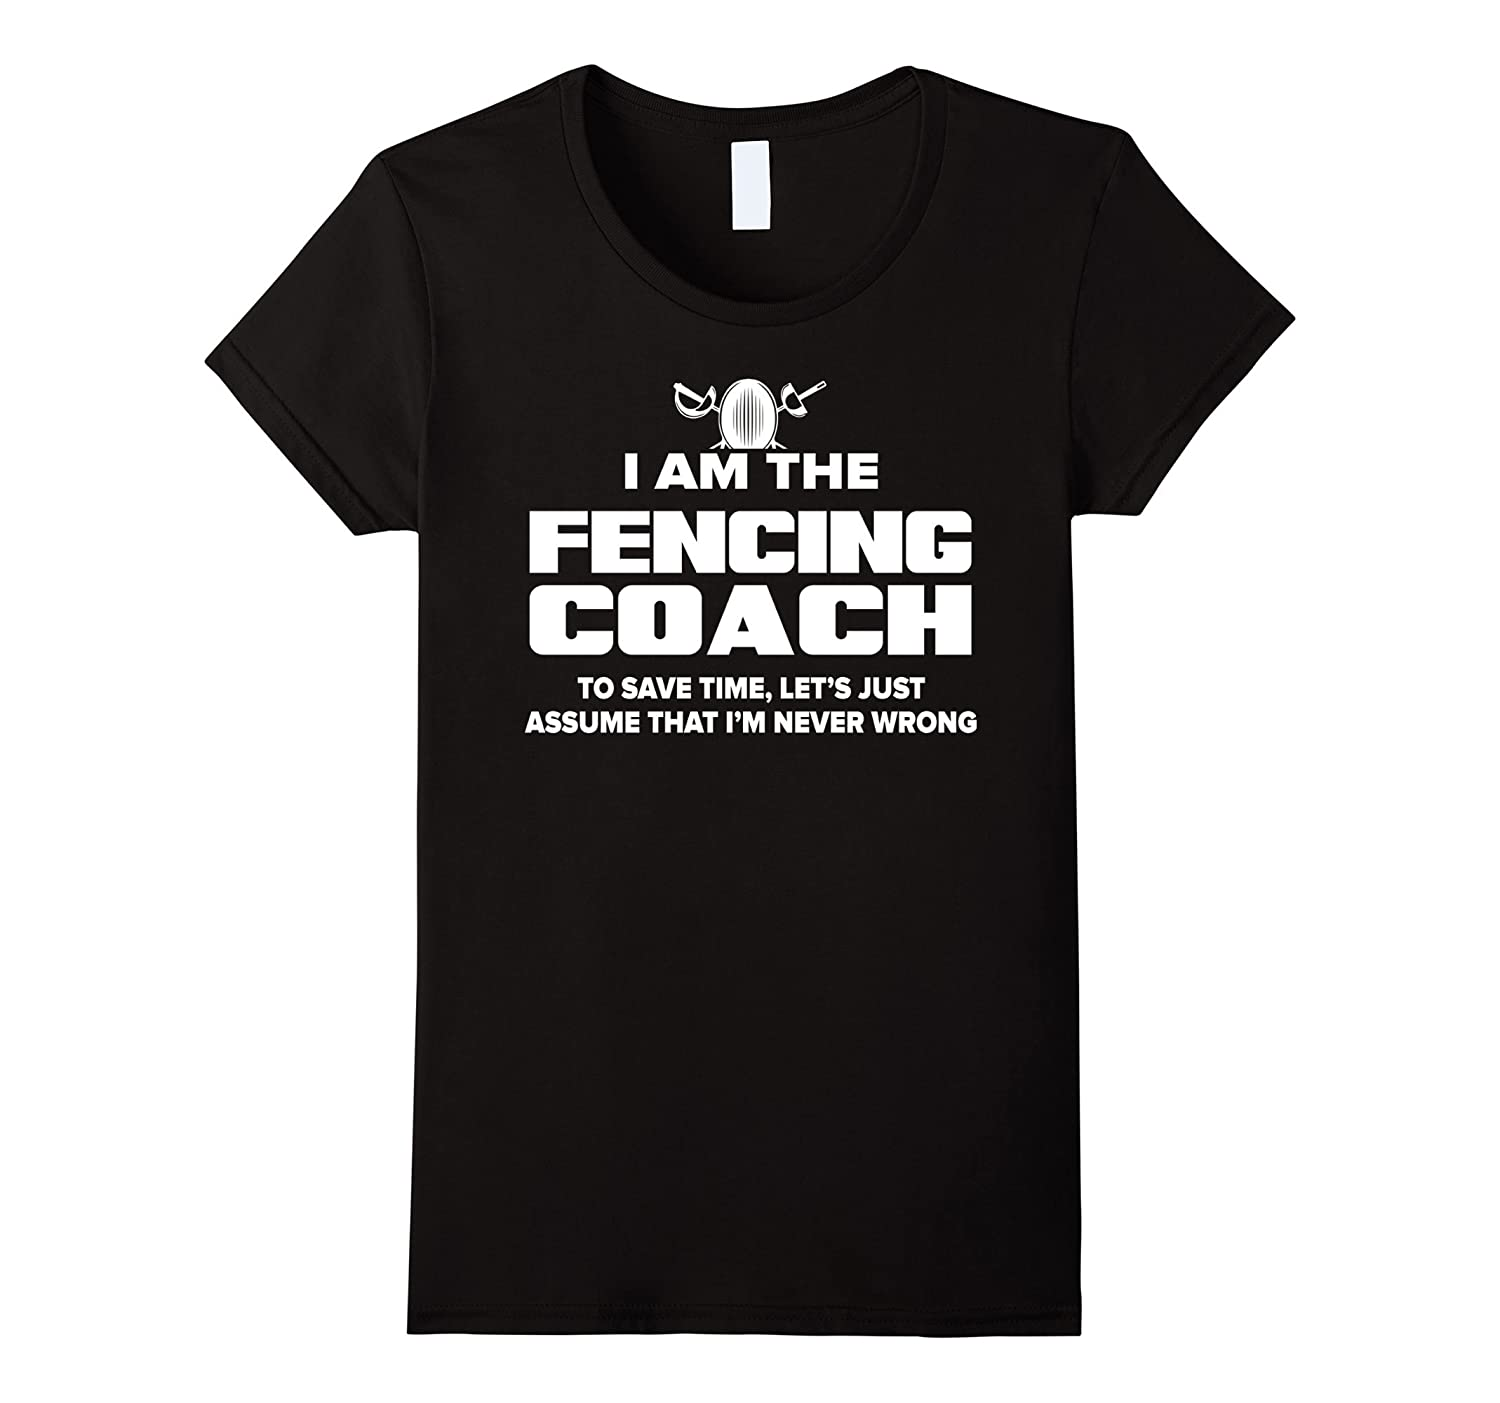 Fencing Coach T-Shirt Funny Gift – Assume I'm Never Wrong